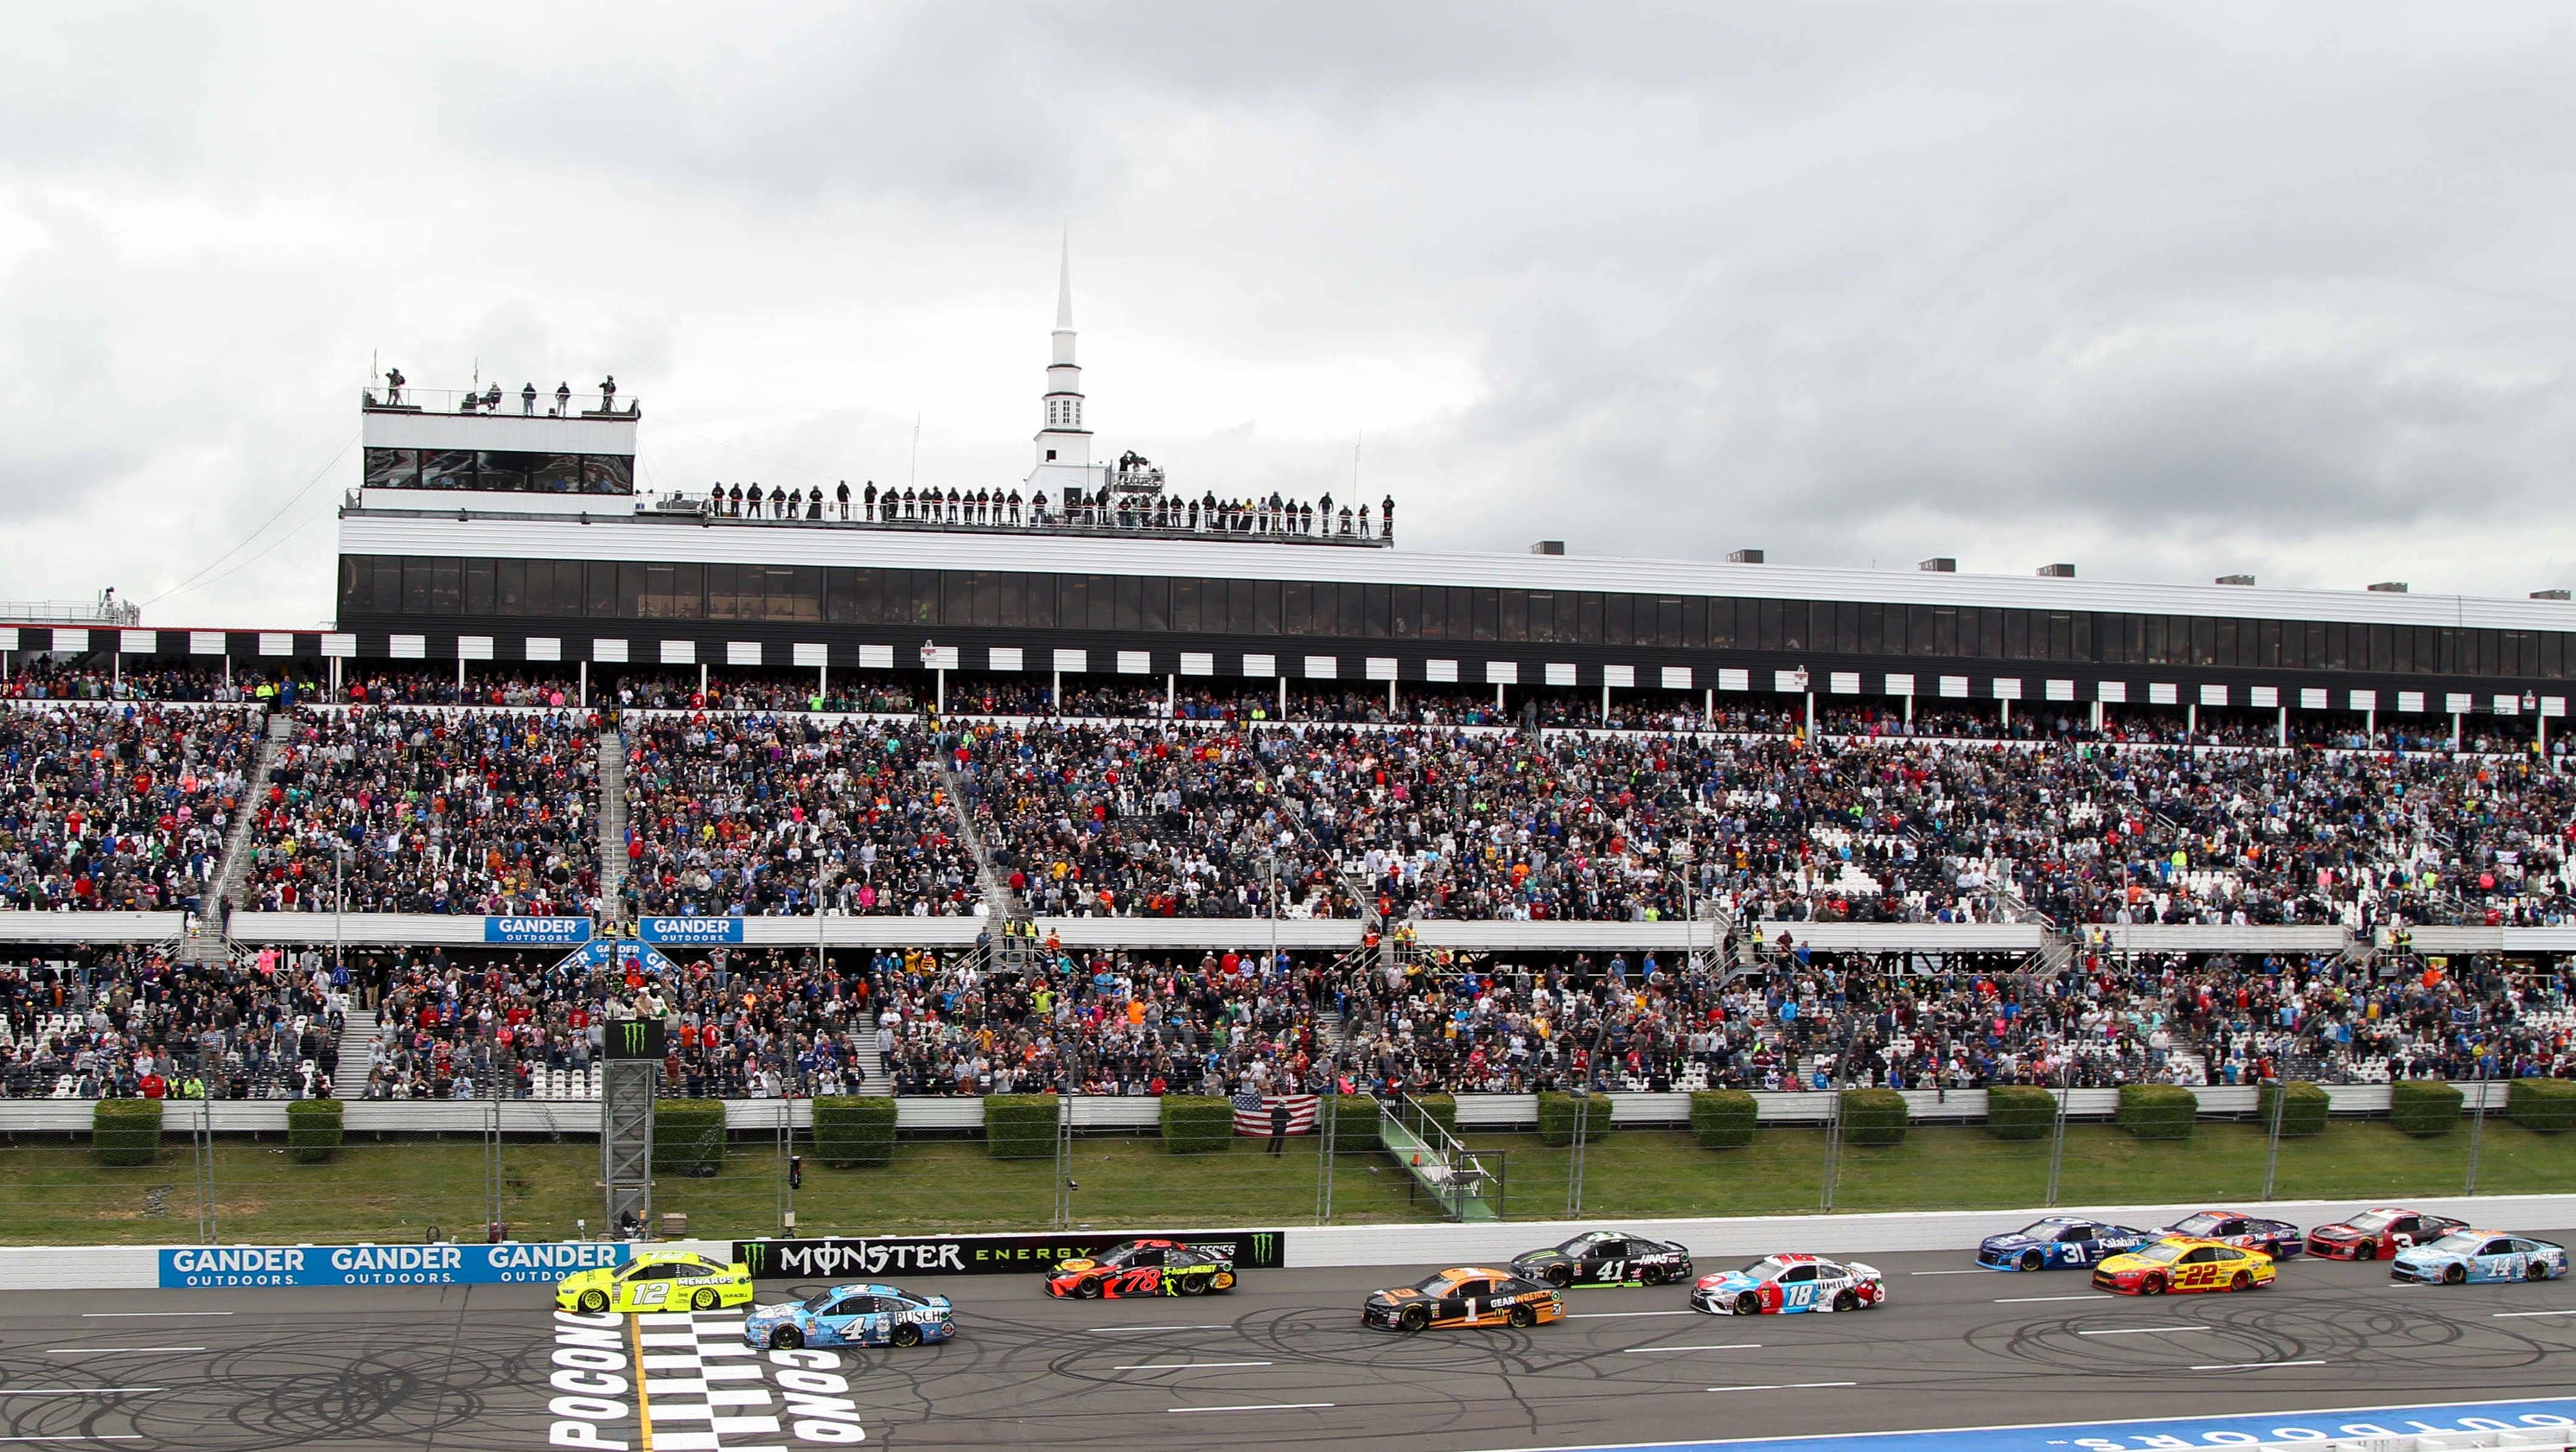 NASCAR: Pocono 400 schedule, starting lineup, TV channel